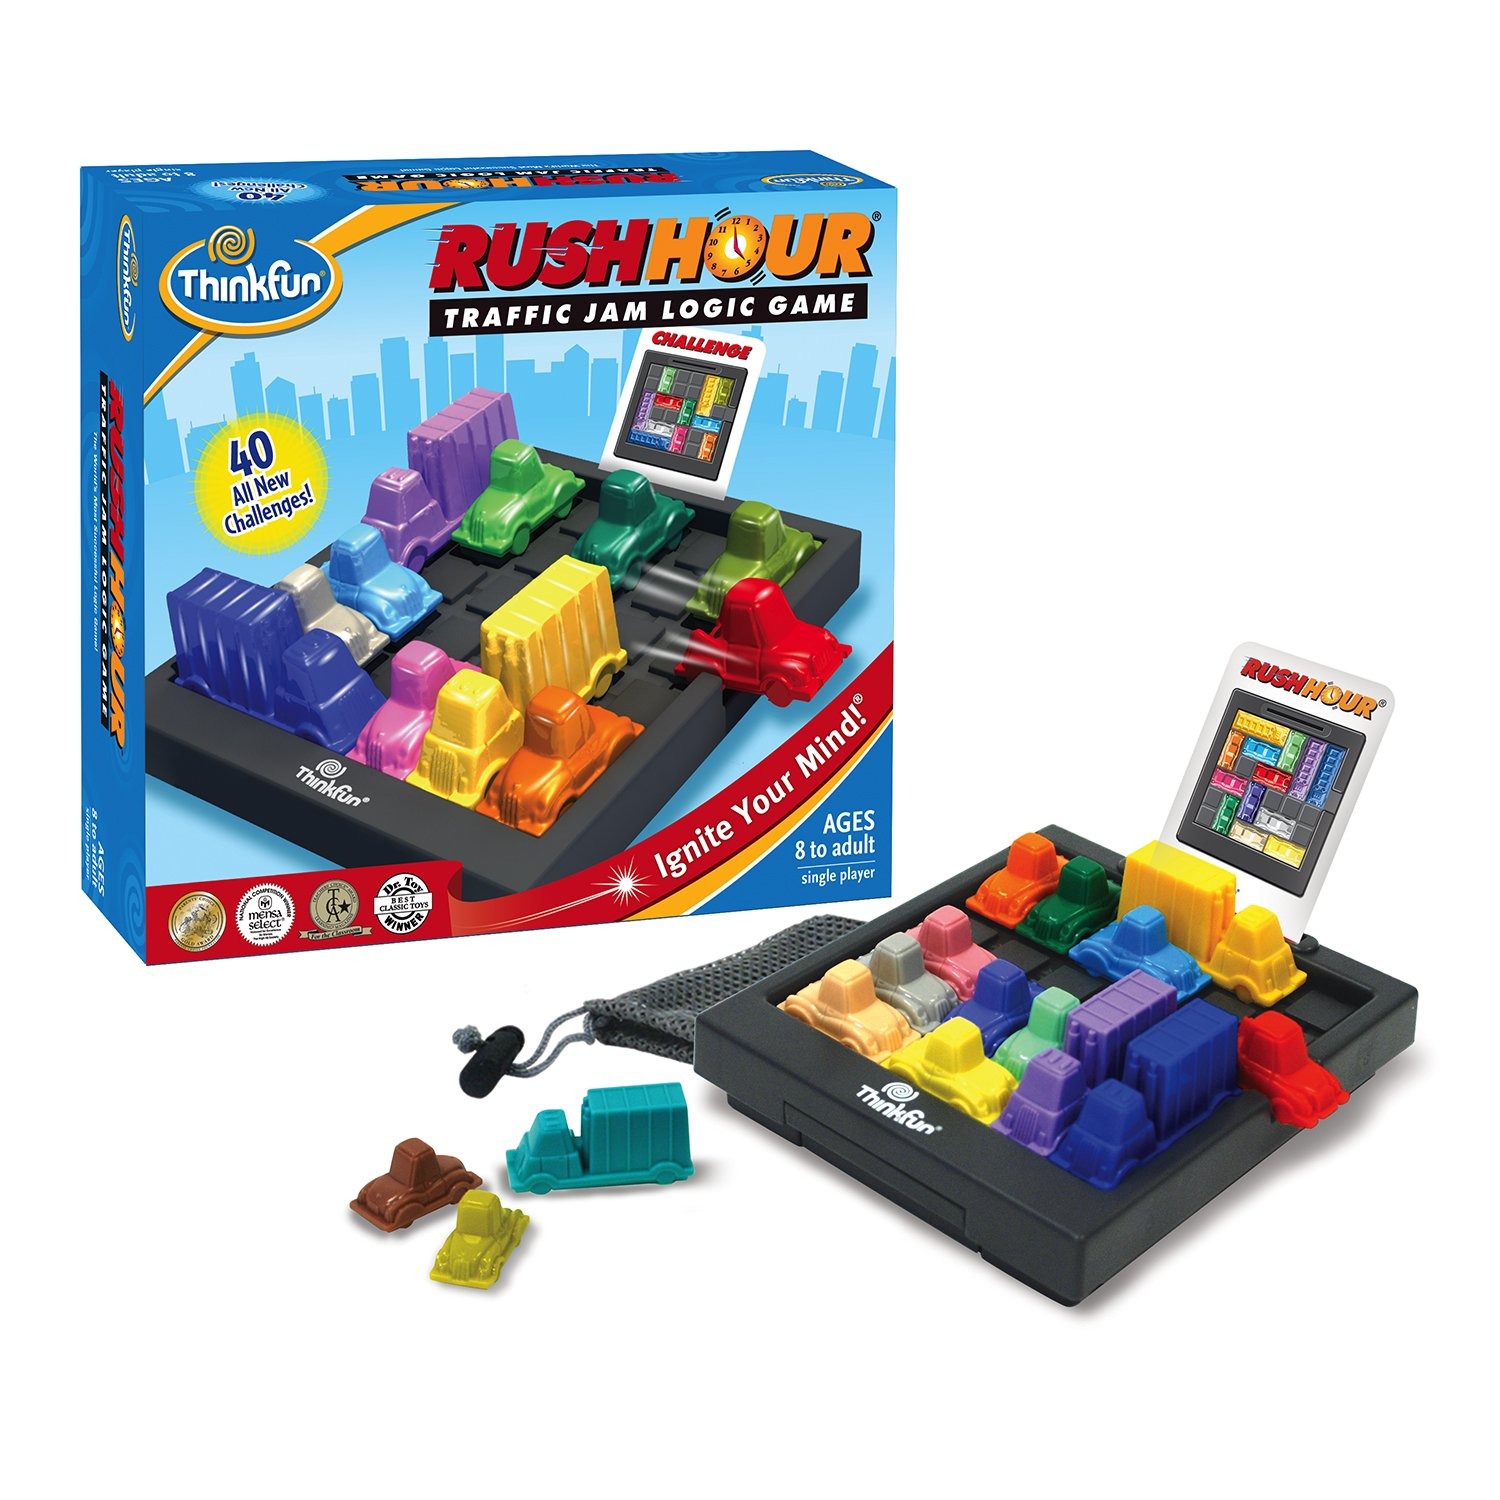 ThinkFun Rush Hour Traffic Jam Logic Game and STEM Toy for Boys and Girls Age 8 and Up - Tons of Fun With Over 20 Awards Won, International Bestseller for Over 20 Years by Think Fun